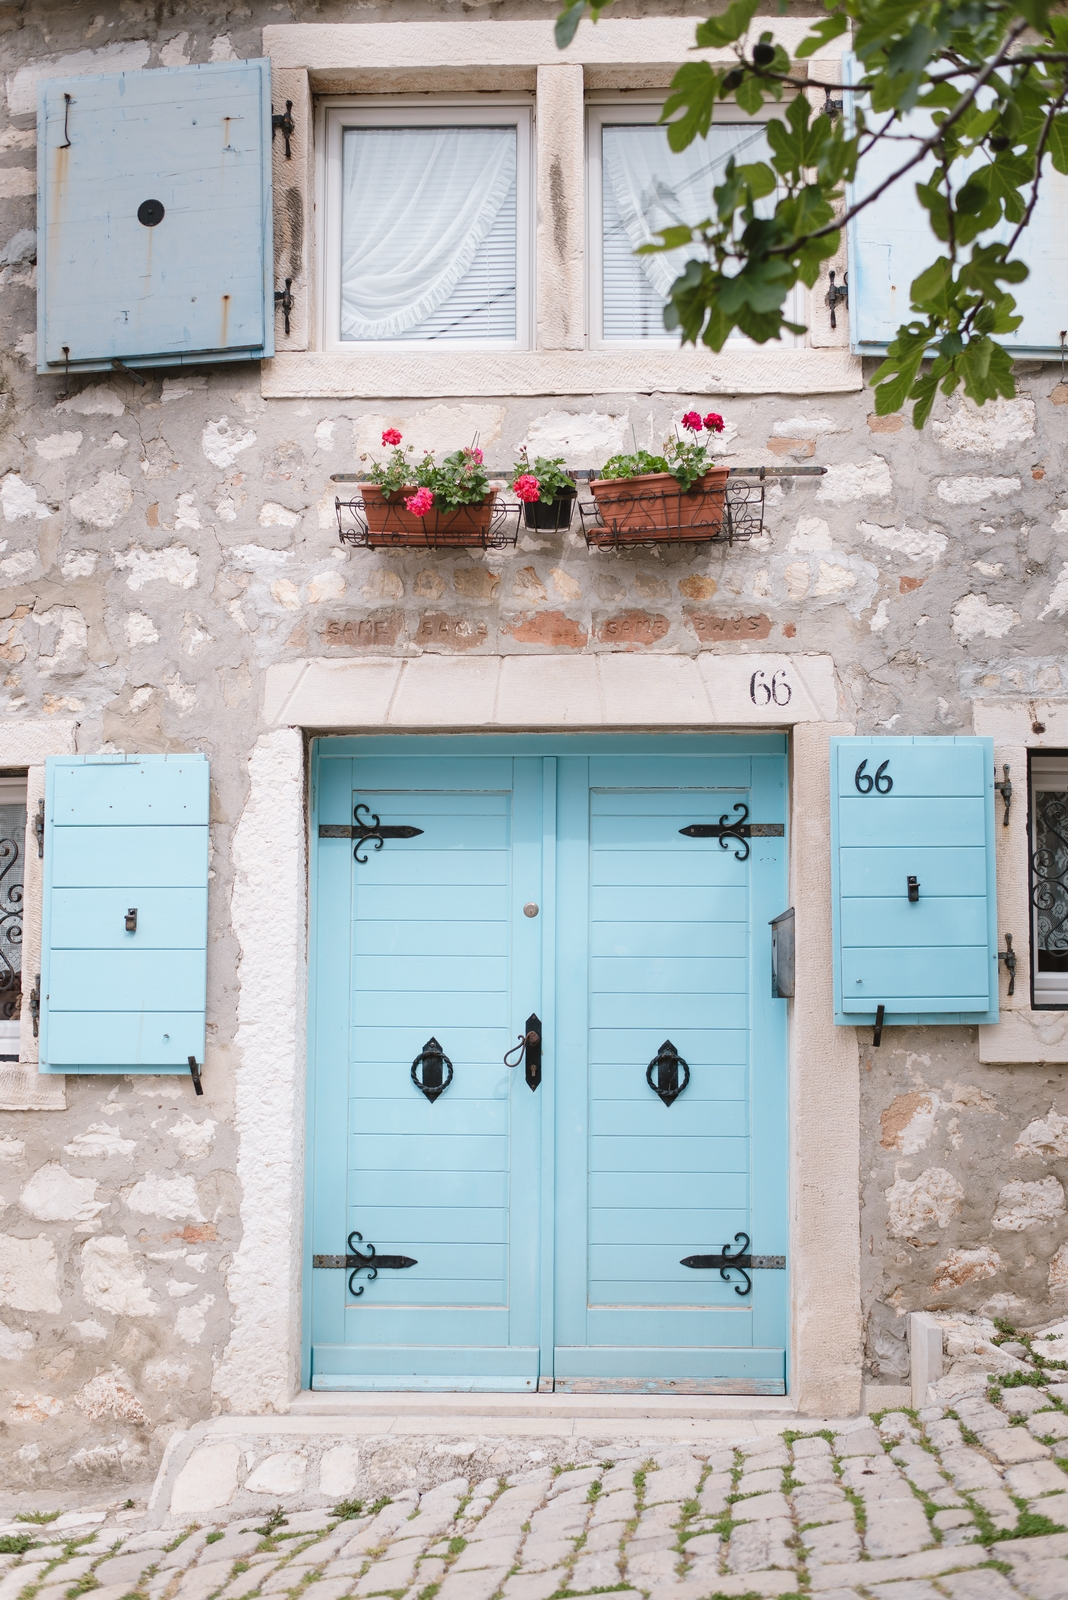 Architecture of the old town of Rovinj, Croatia - from travel blog http://Epepa.eu